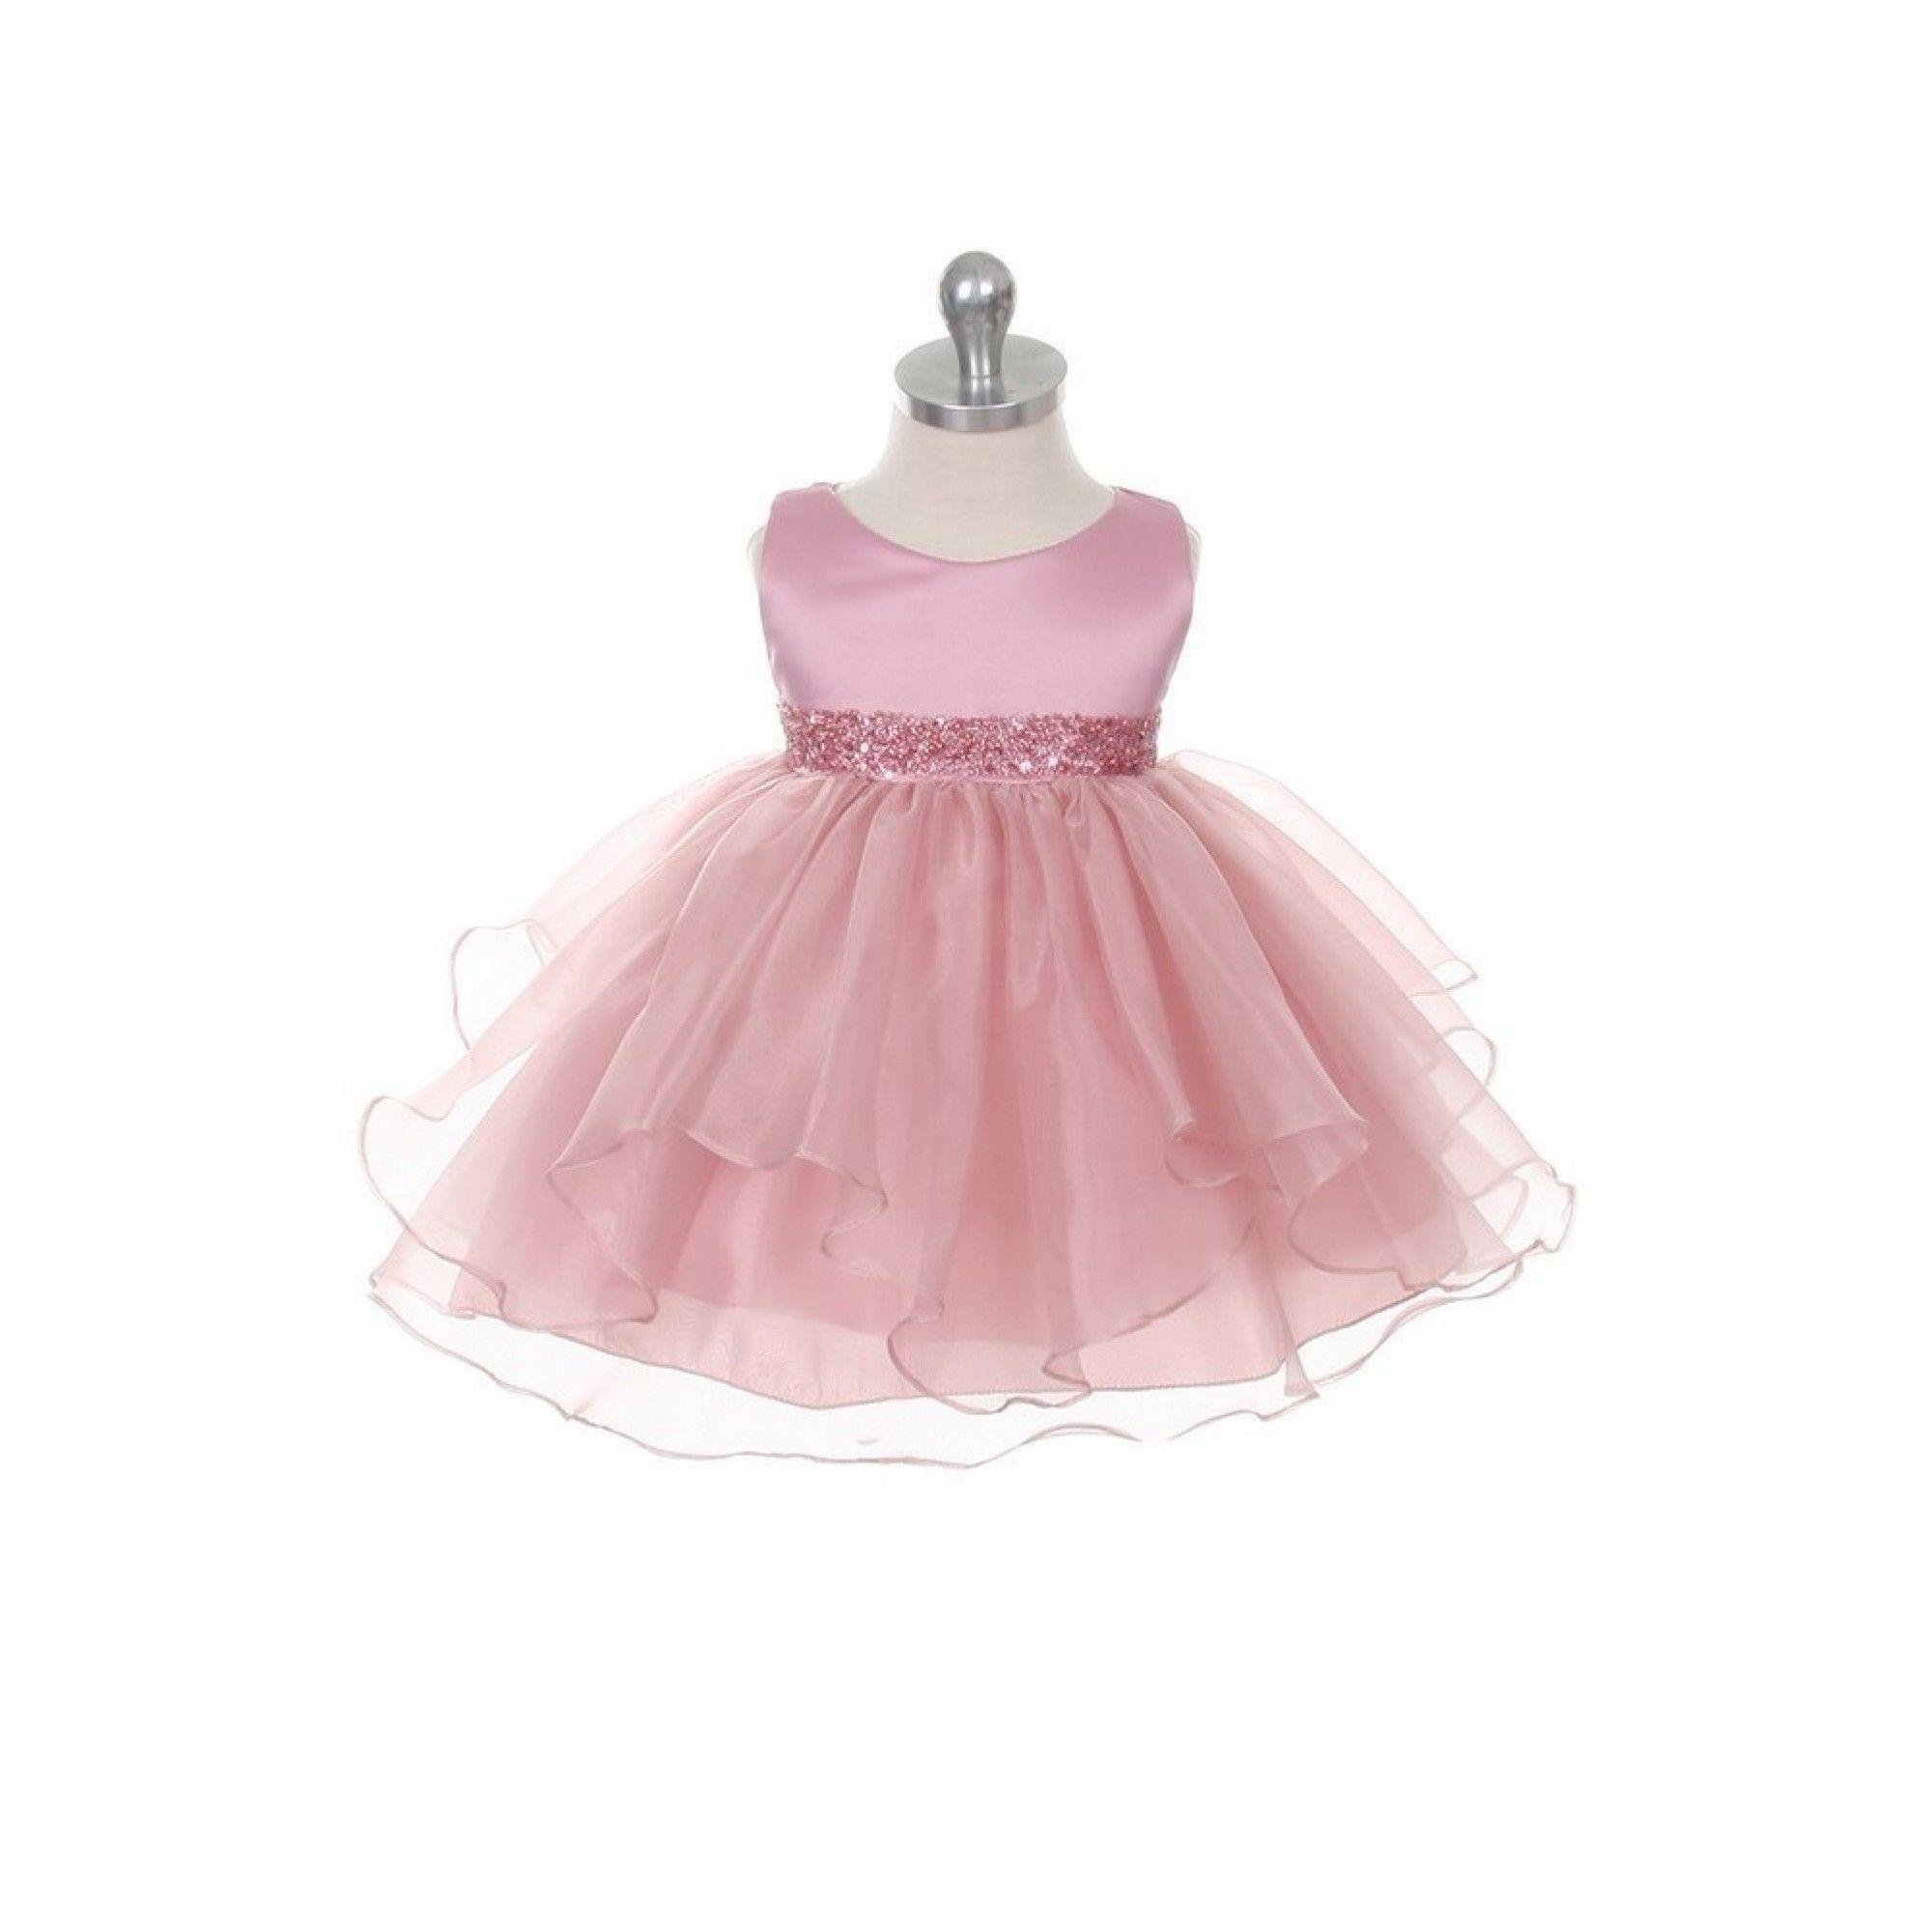 Chic Baby Rose Organza Sequin Special Occasion Dress Baby Girl 12M